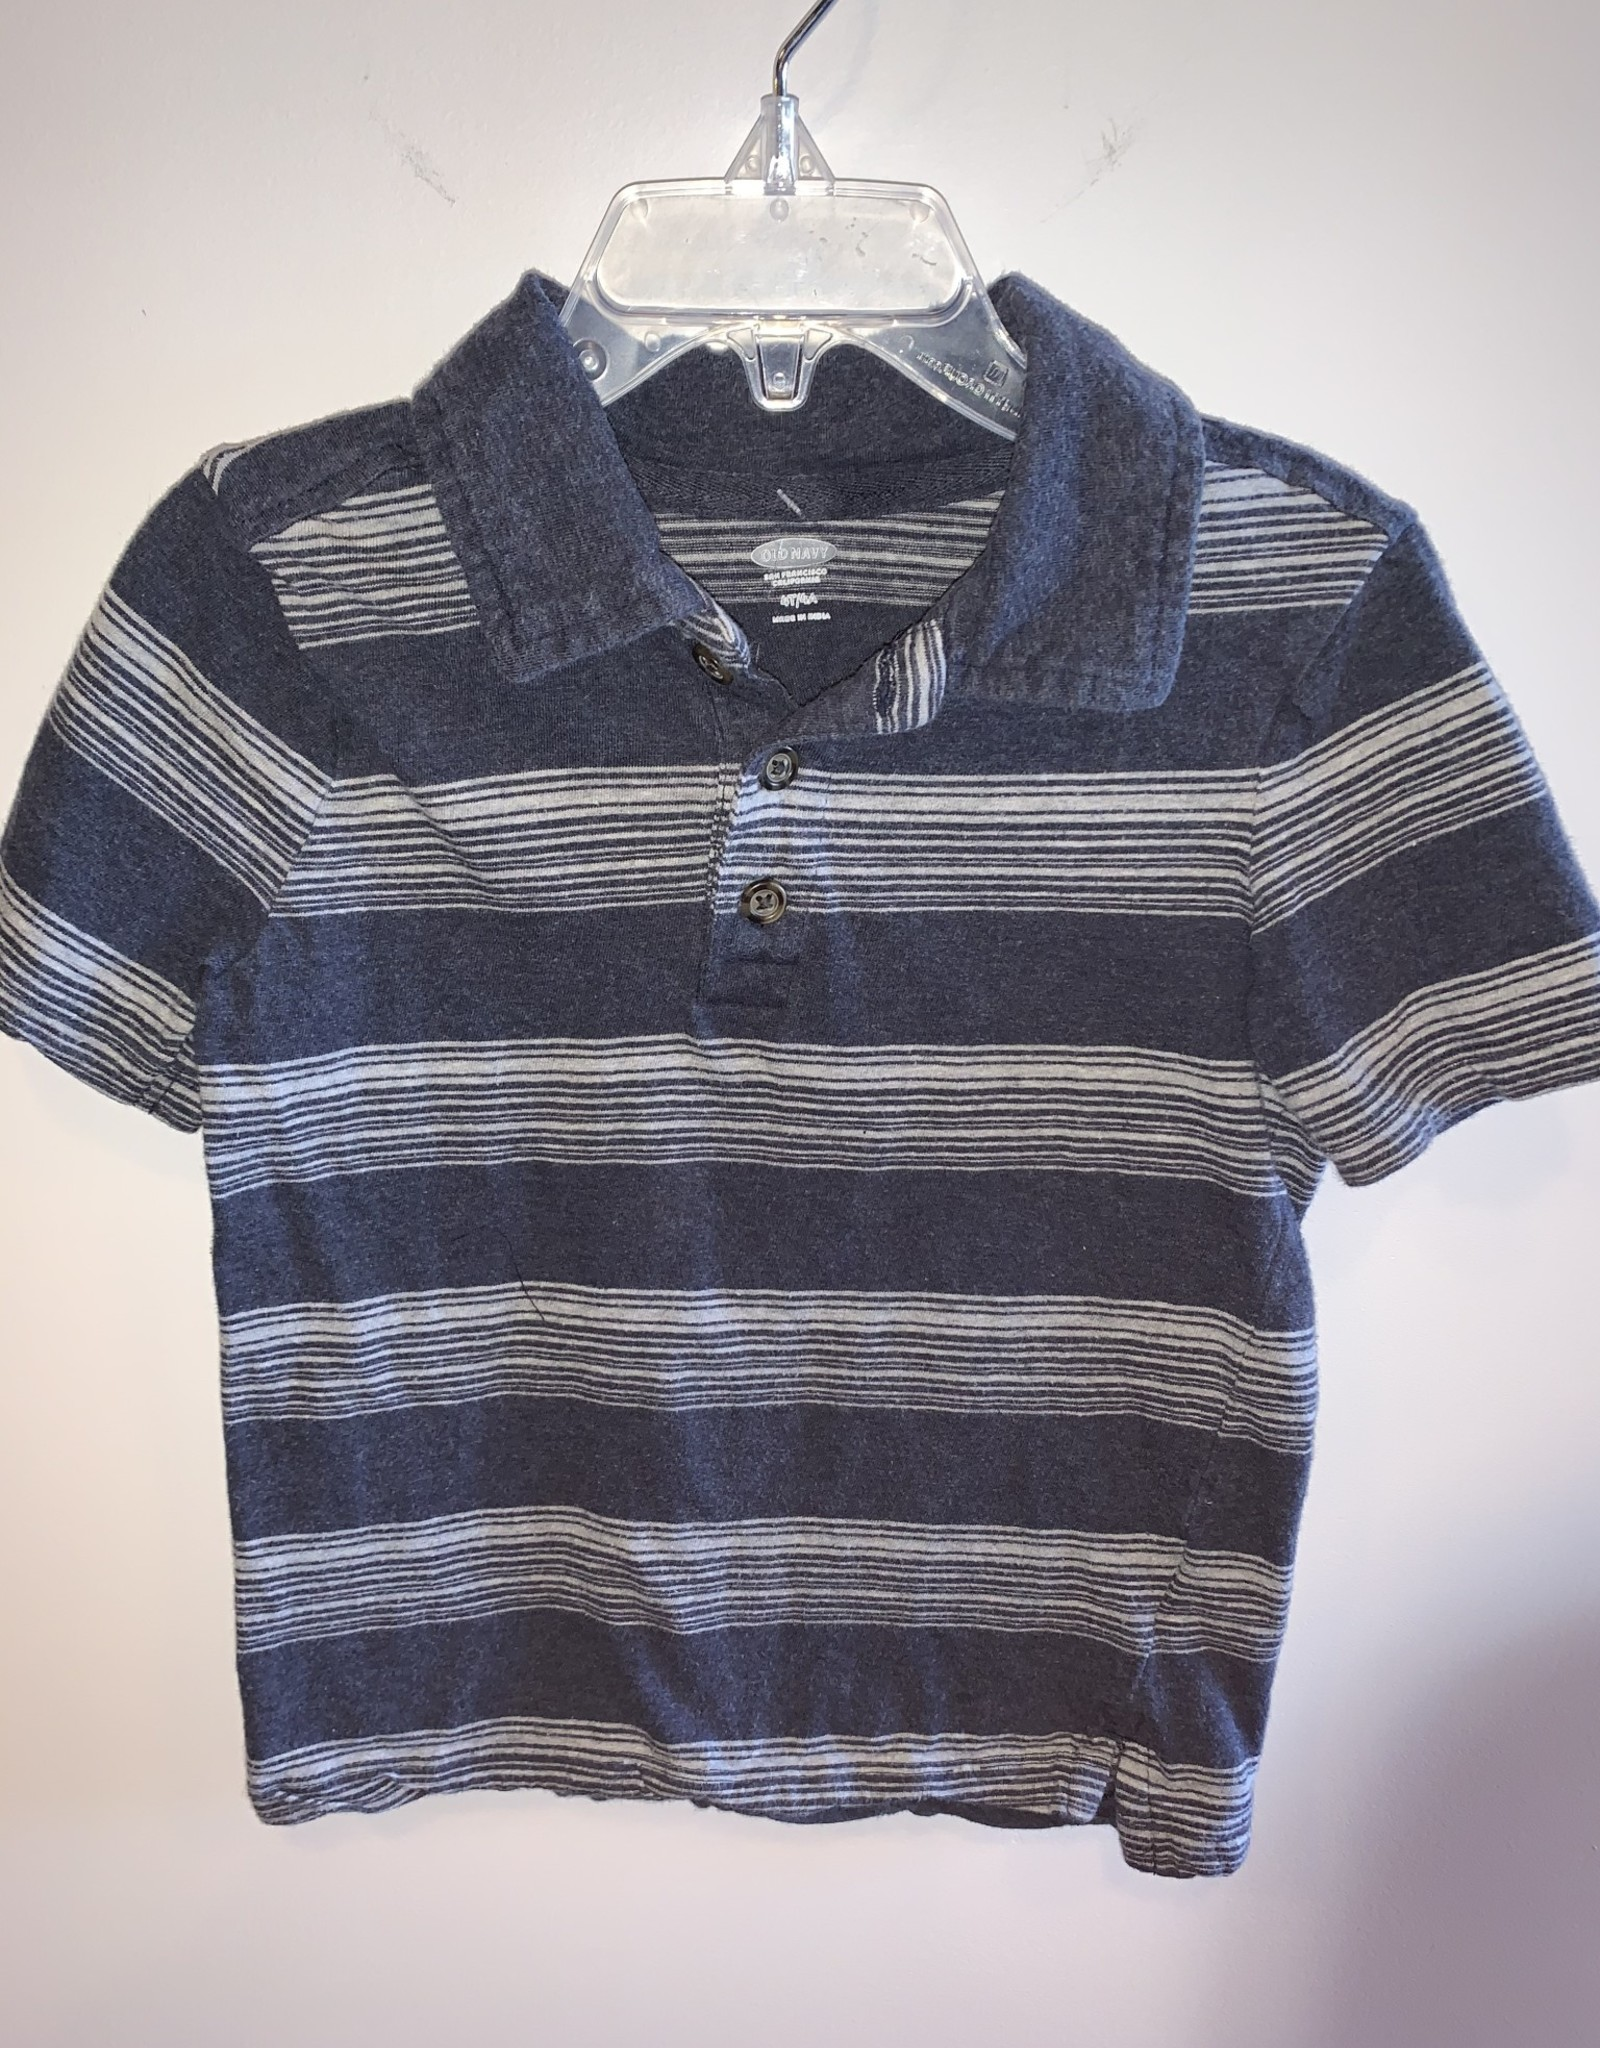 Old Navy Boys/4T/OldNavy/Shirt